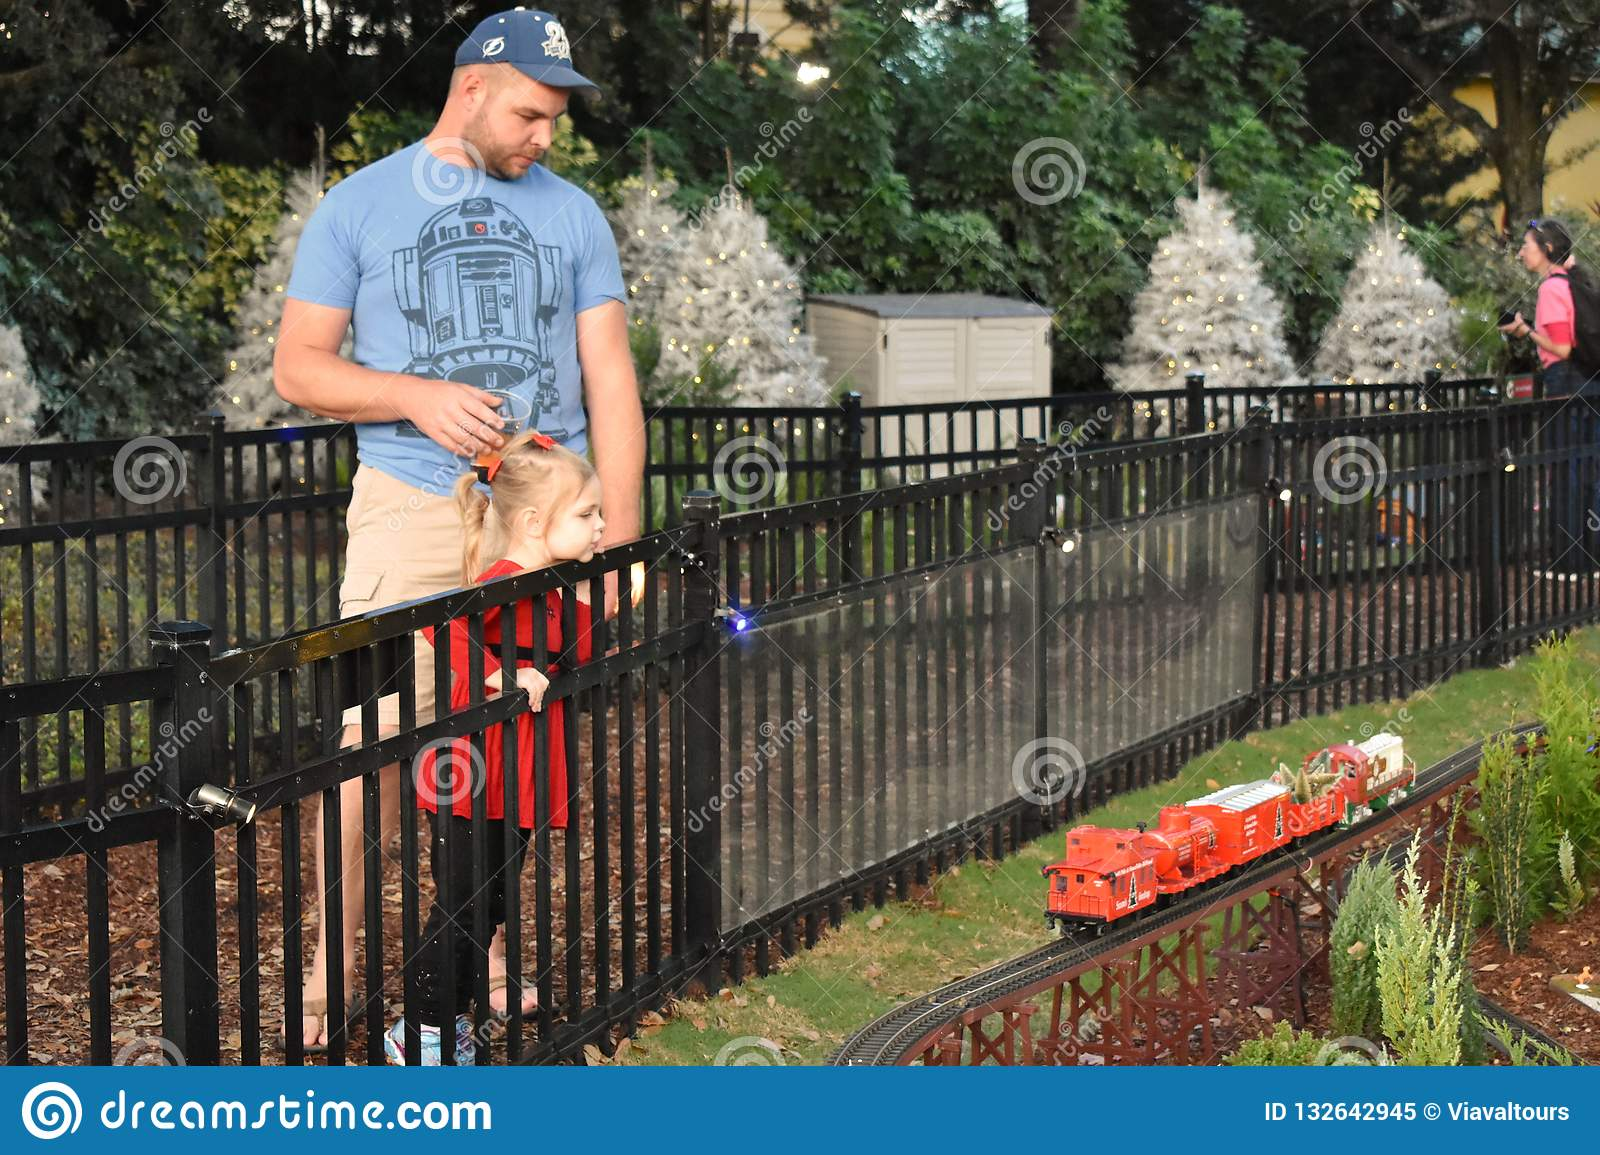 Father and daughter looking at miniature train in International Drive area.